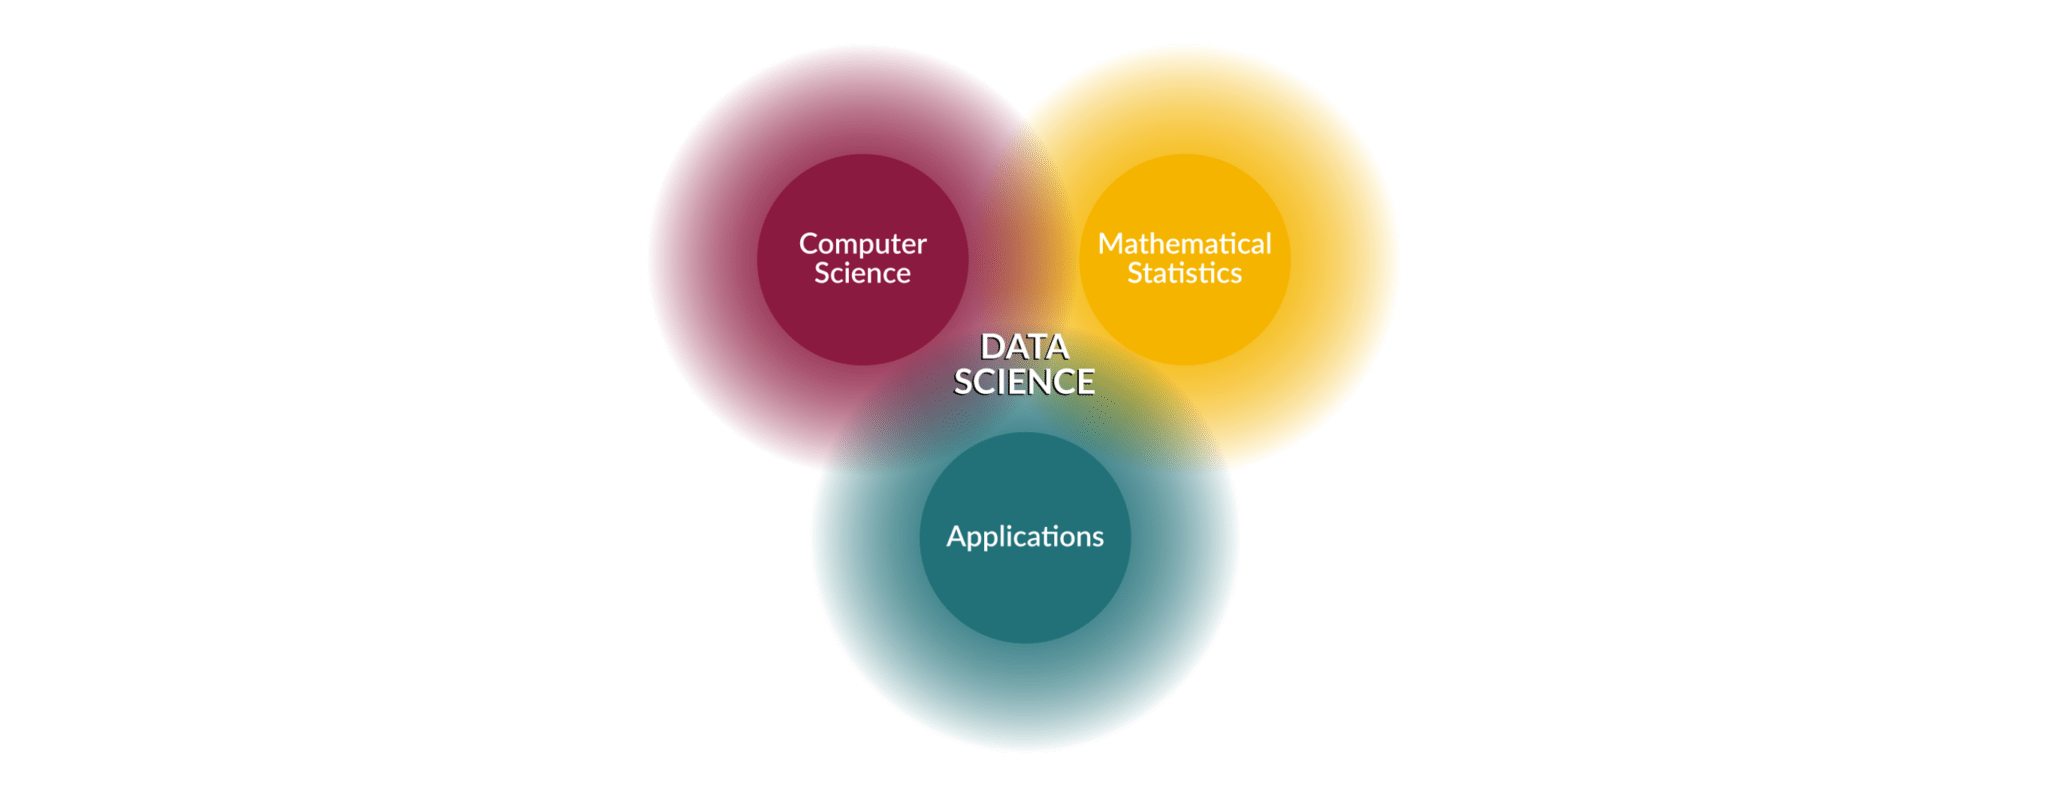 Data Science Diagram - Data Science Interview Questions - Edureka